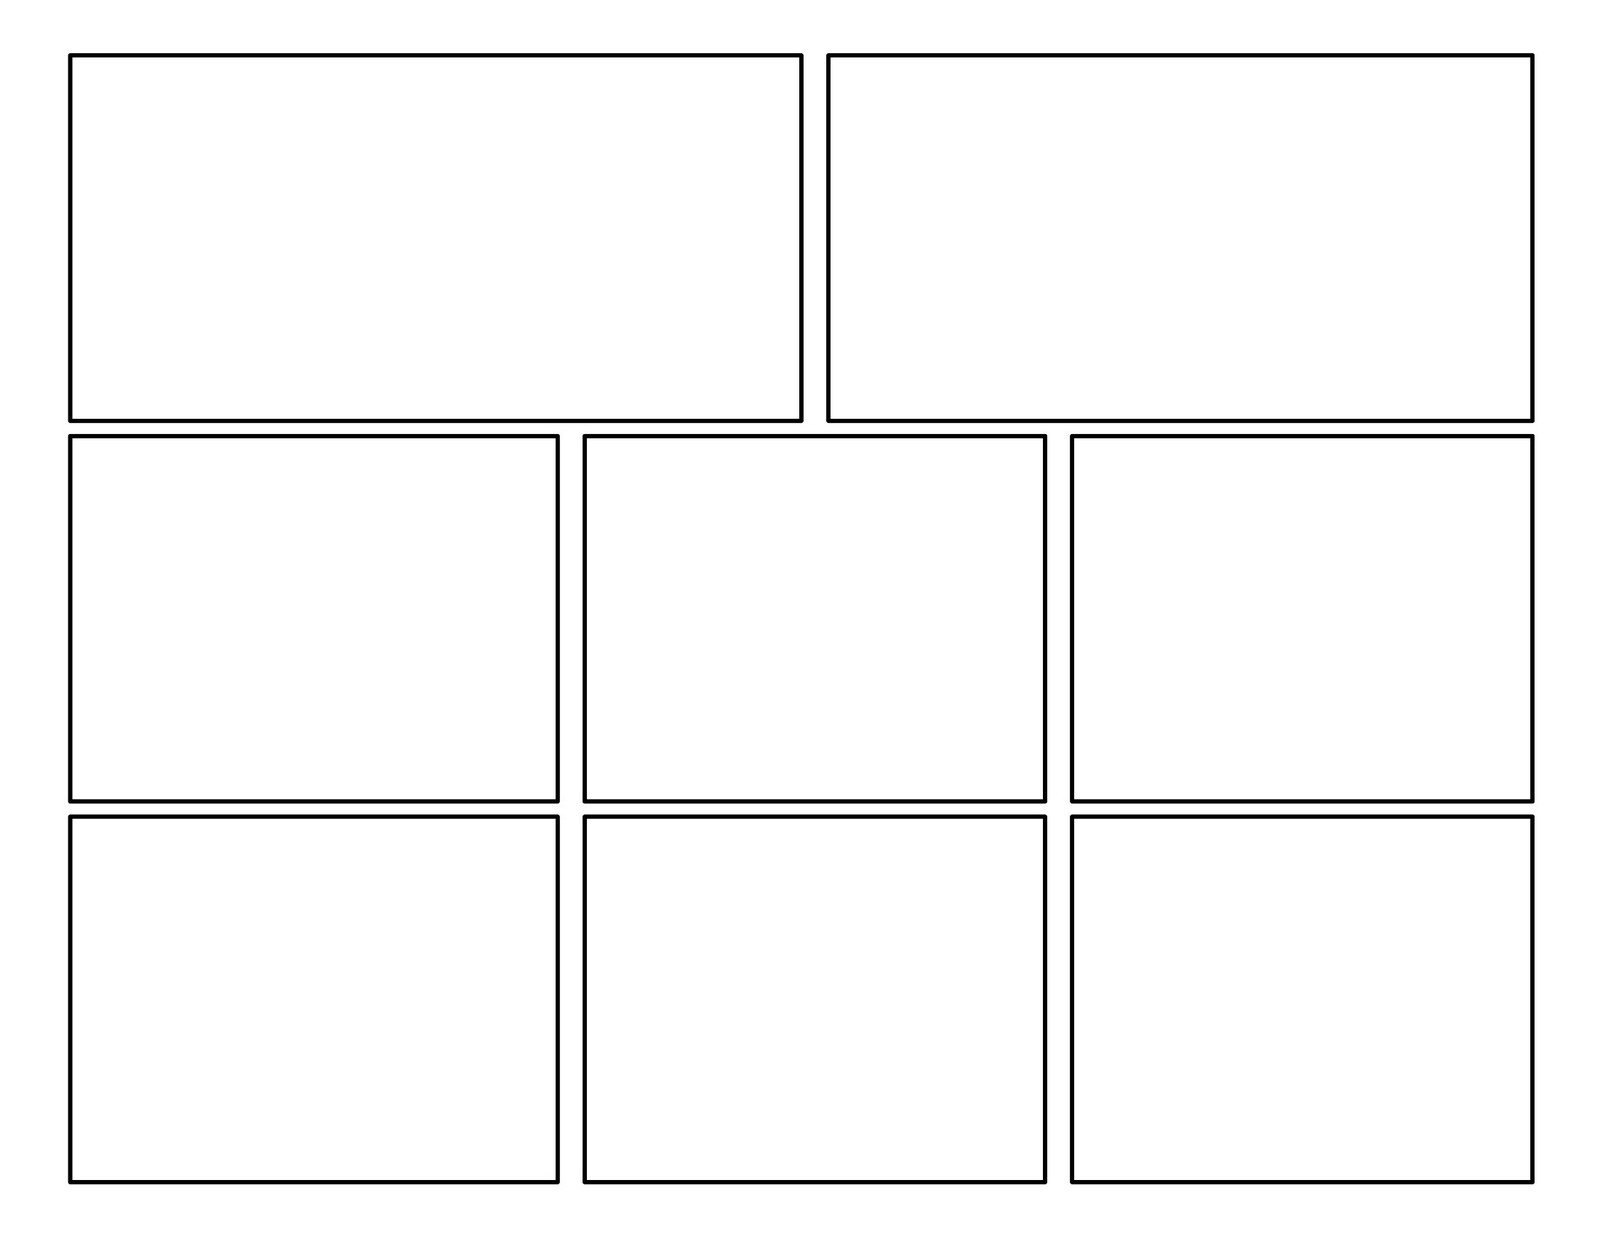 3rd grade: Second Batch of Comic Templates